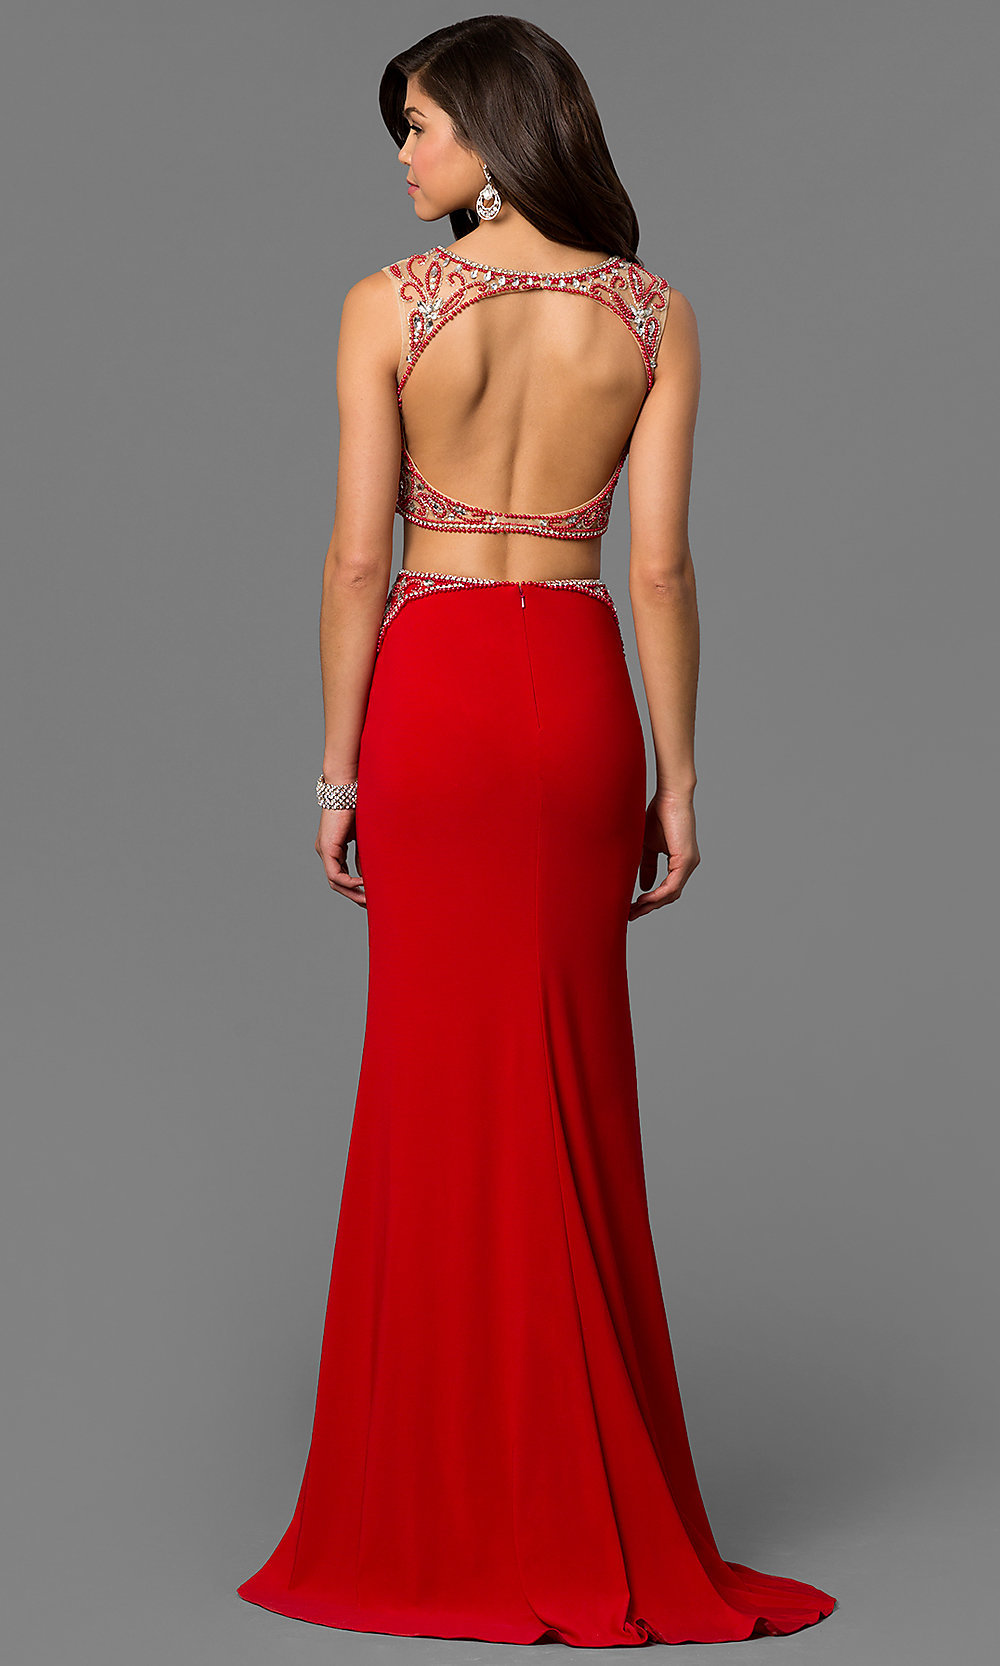 Outstanding Prom Dress Shops In Bradford Picture Collection ...